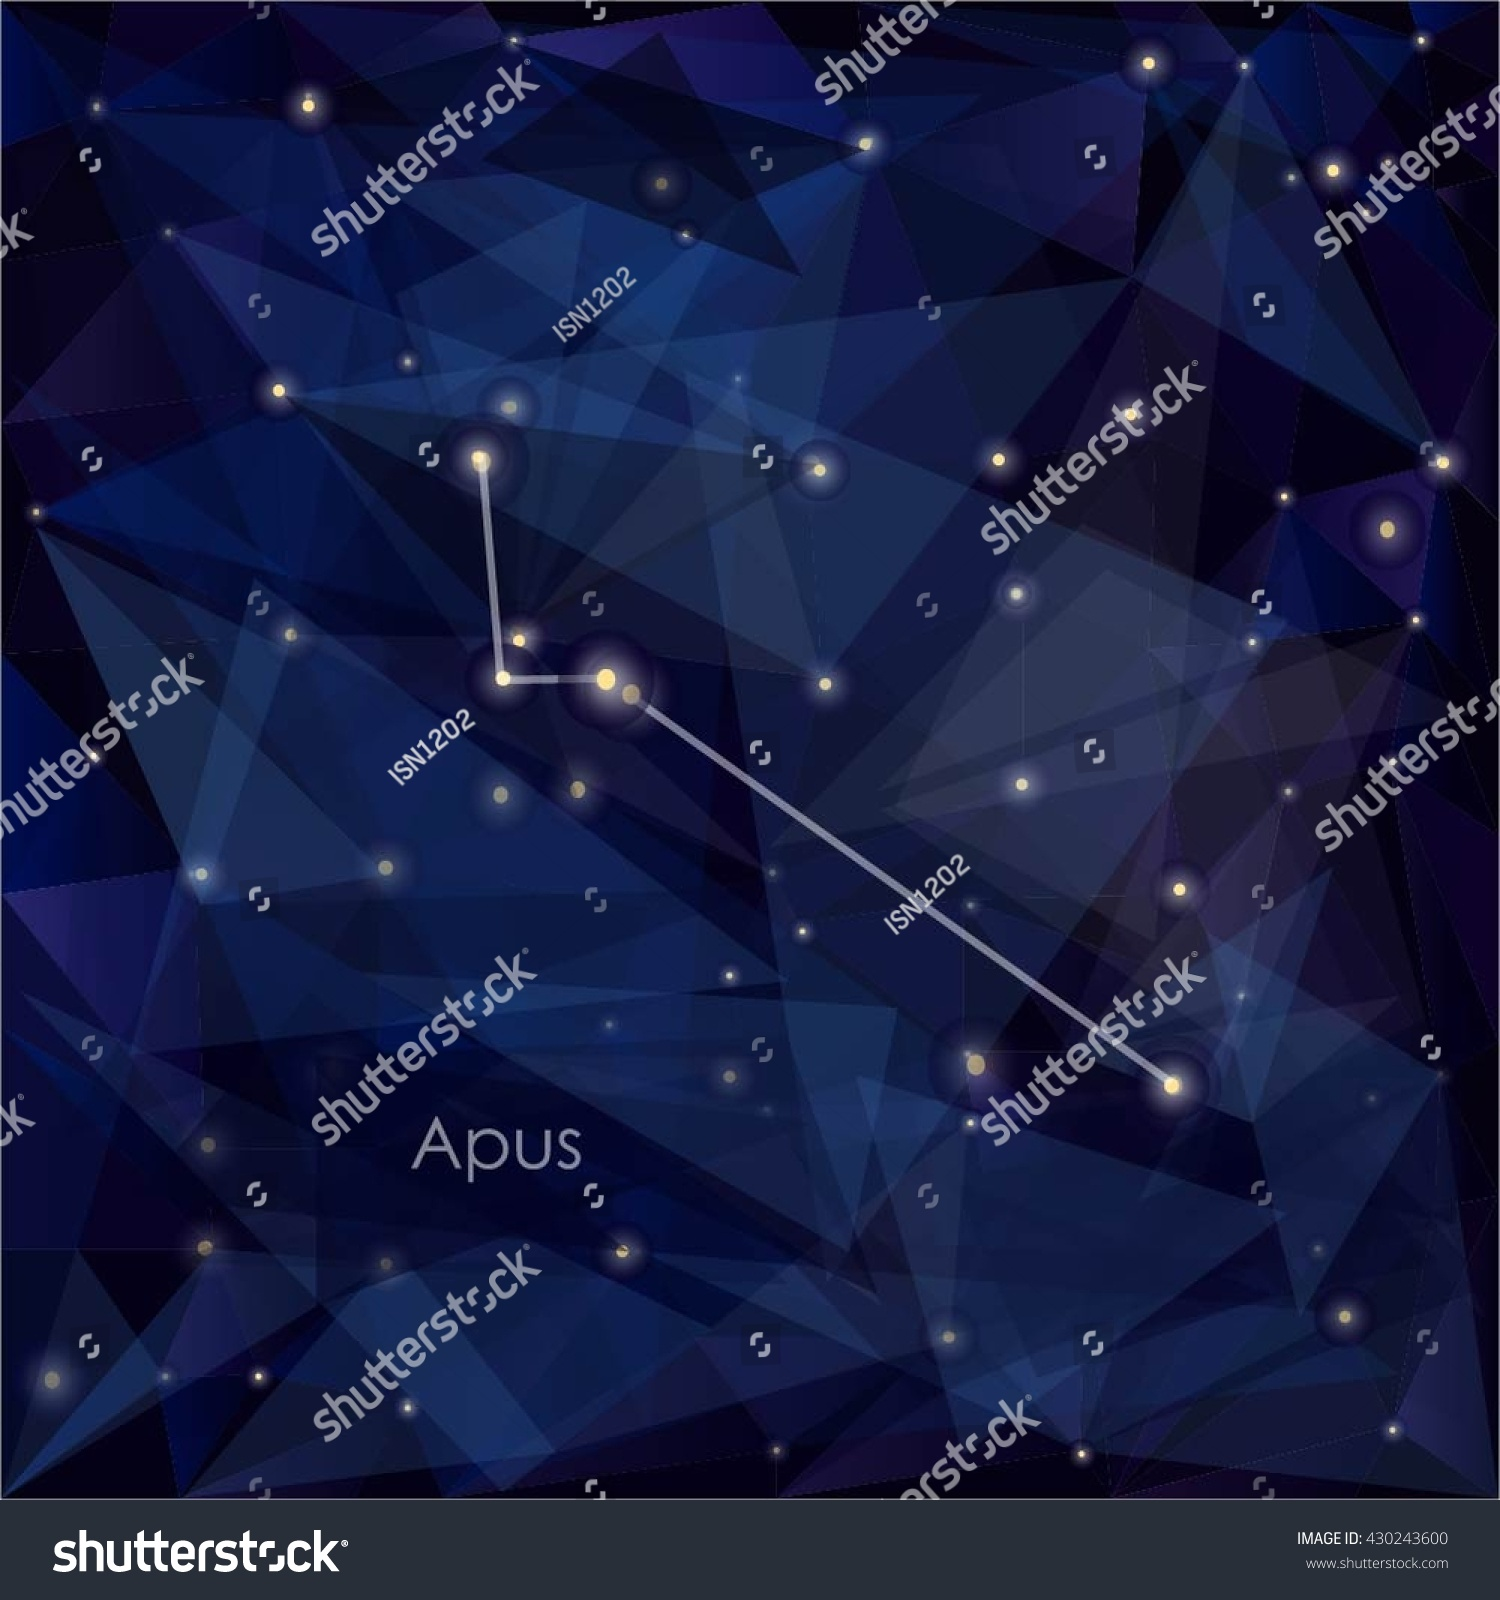 Apus Constellation In Night Sky Background S A Triangulation